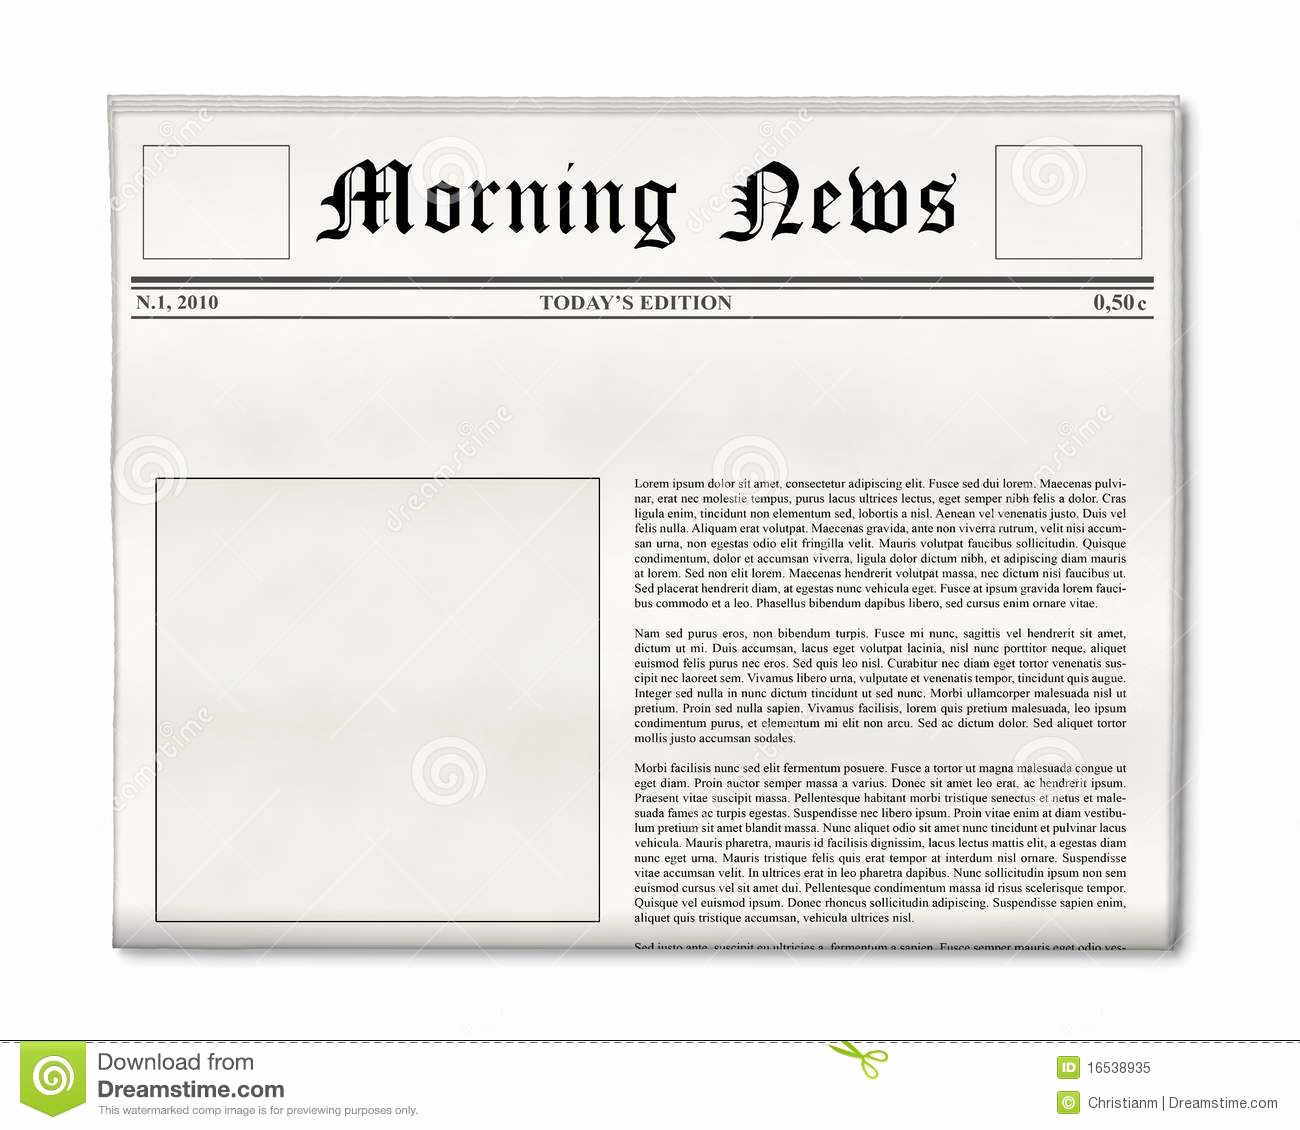 Newspaper Front Page Template Lovely Newspaper Headline and Template Royalty Free Stock